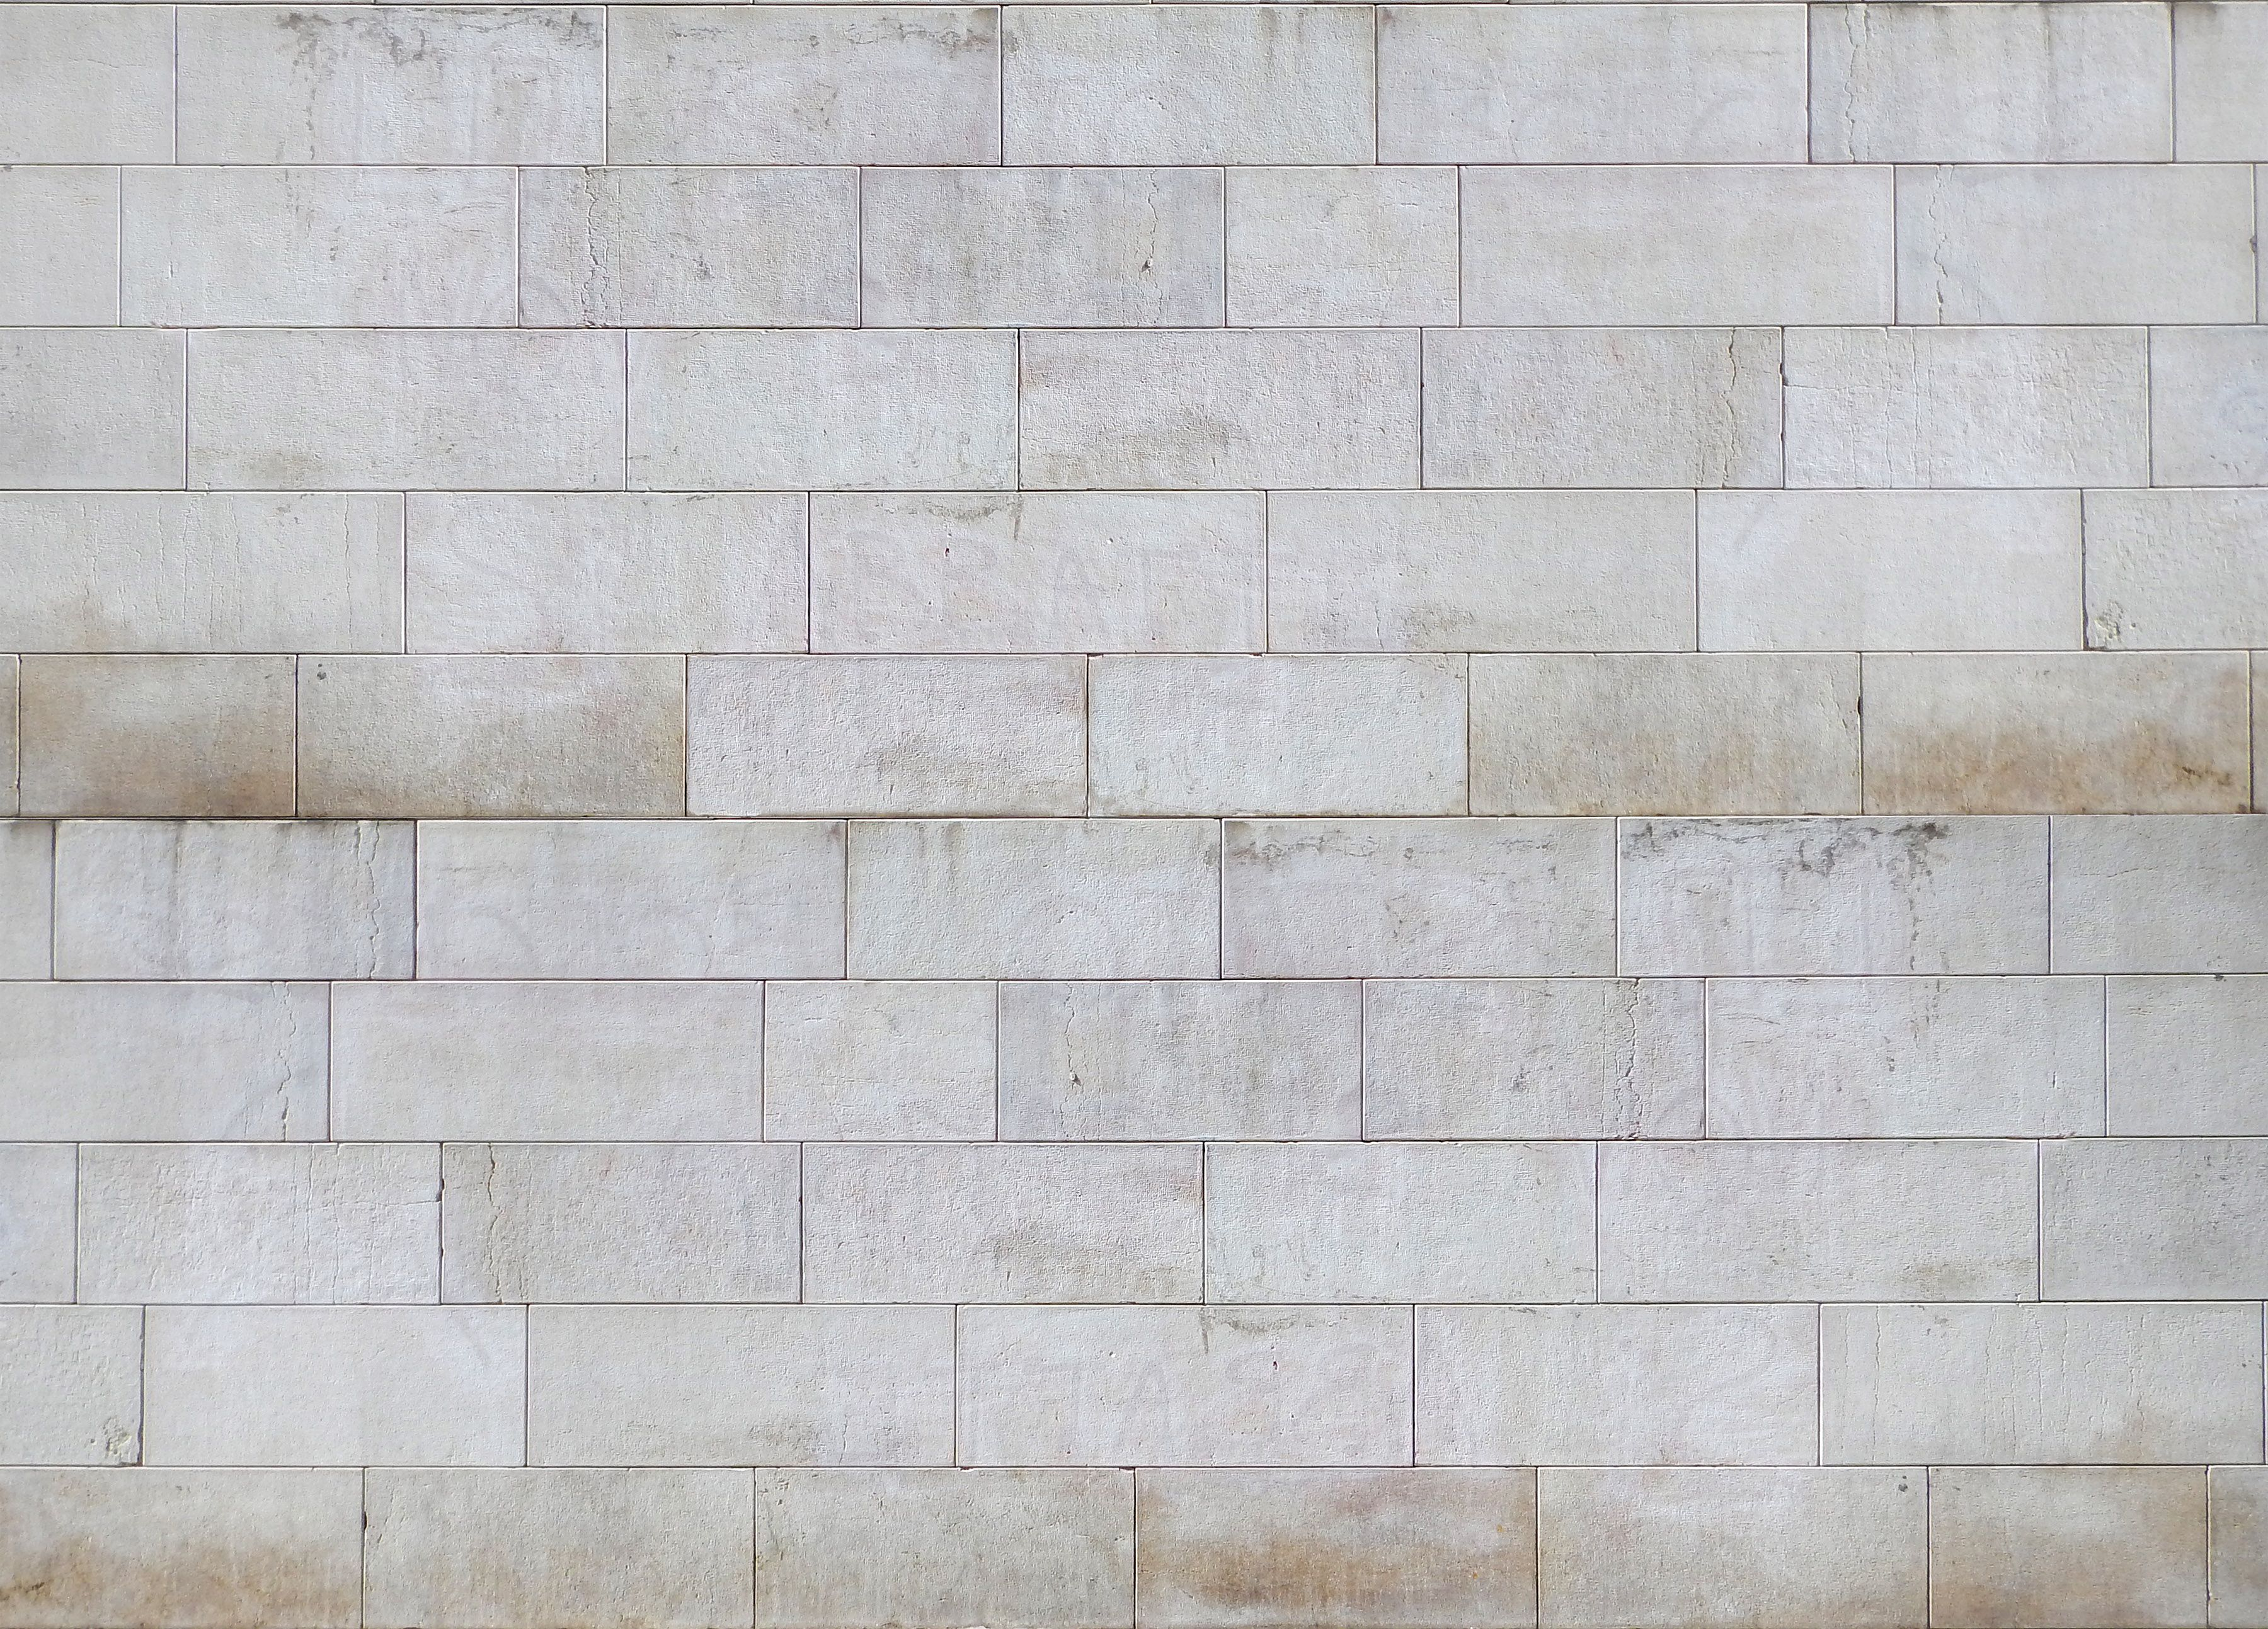 Pin by grafik desijn on graphic design textures pinterest stone veneer panels thin stone veneer tiles texture wall textures white stone stone tiles miniature stones illustration doublecrazyfo Choice Image